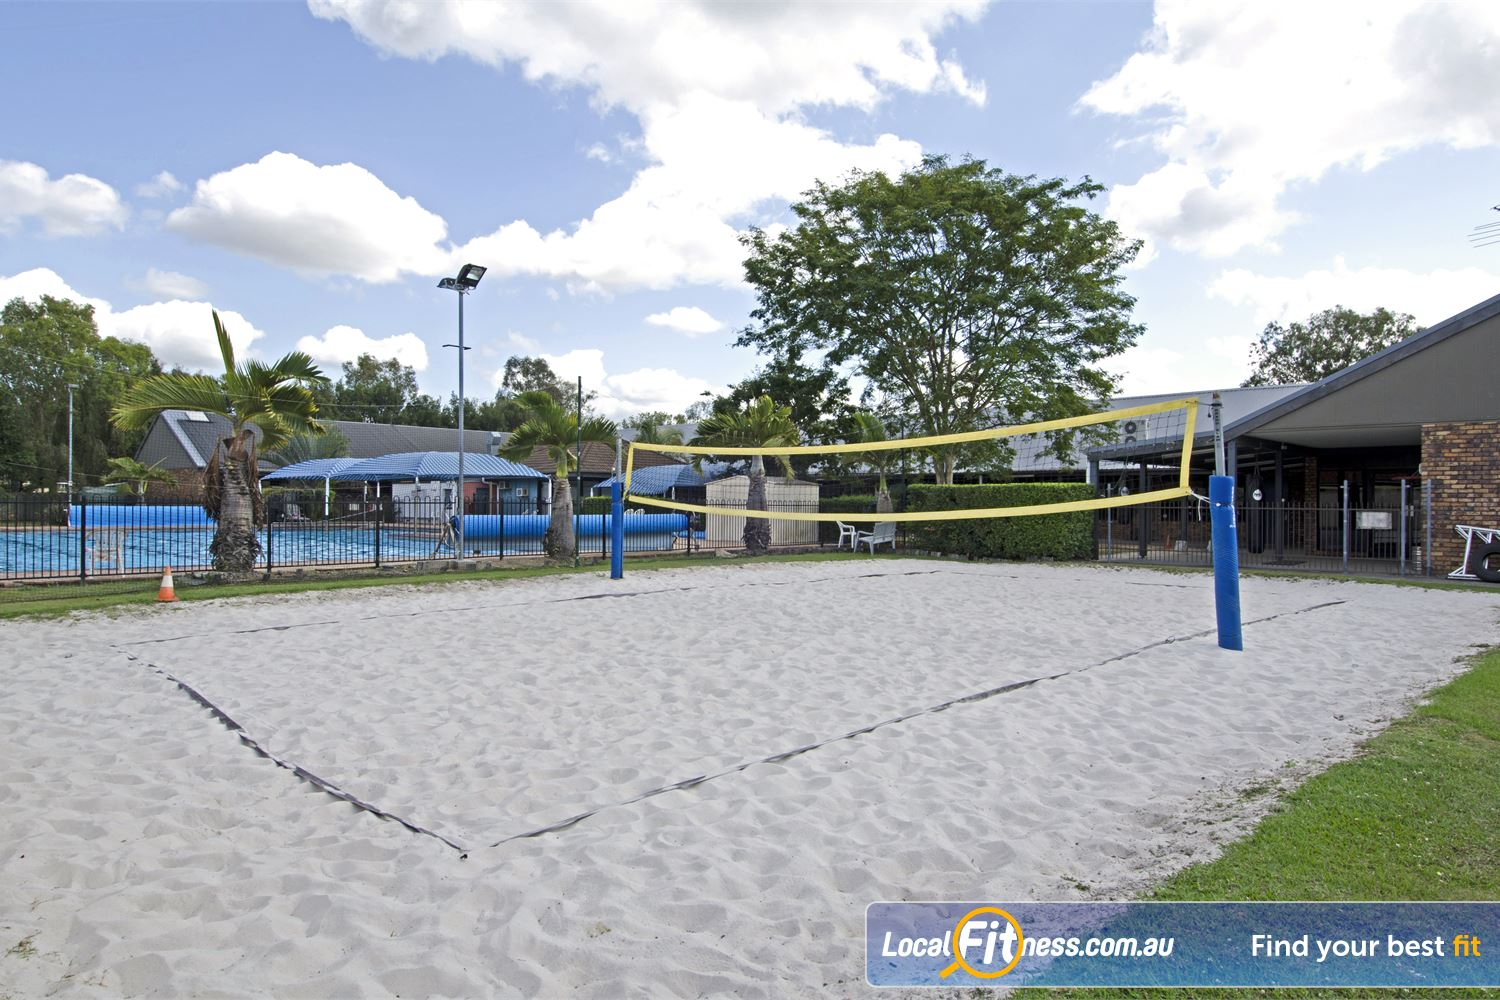 Goodlife Health Clubs Near Bridgeman Downs Add some fun to your workouts with our outdoor volleyball courts.